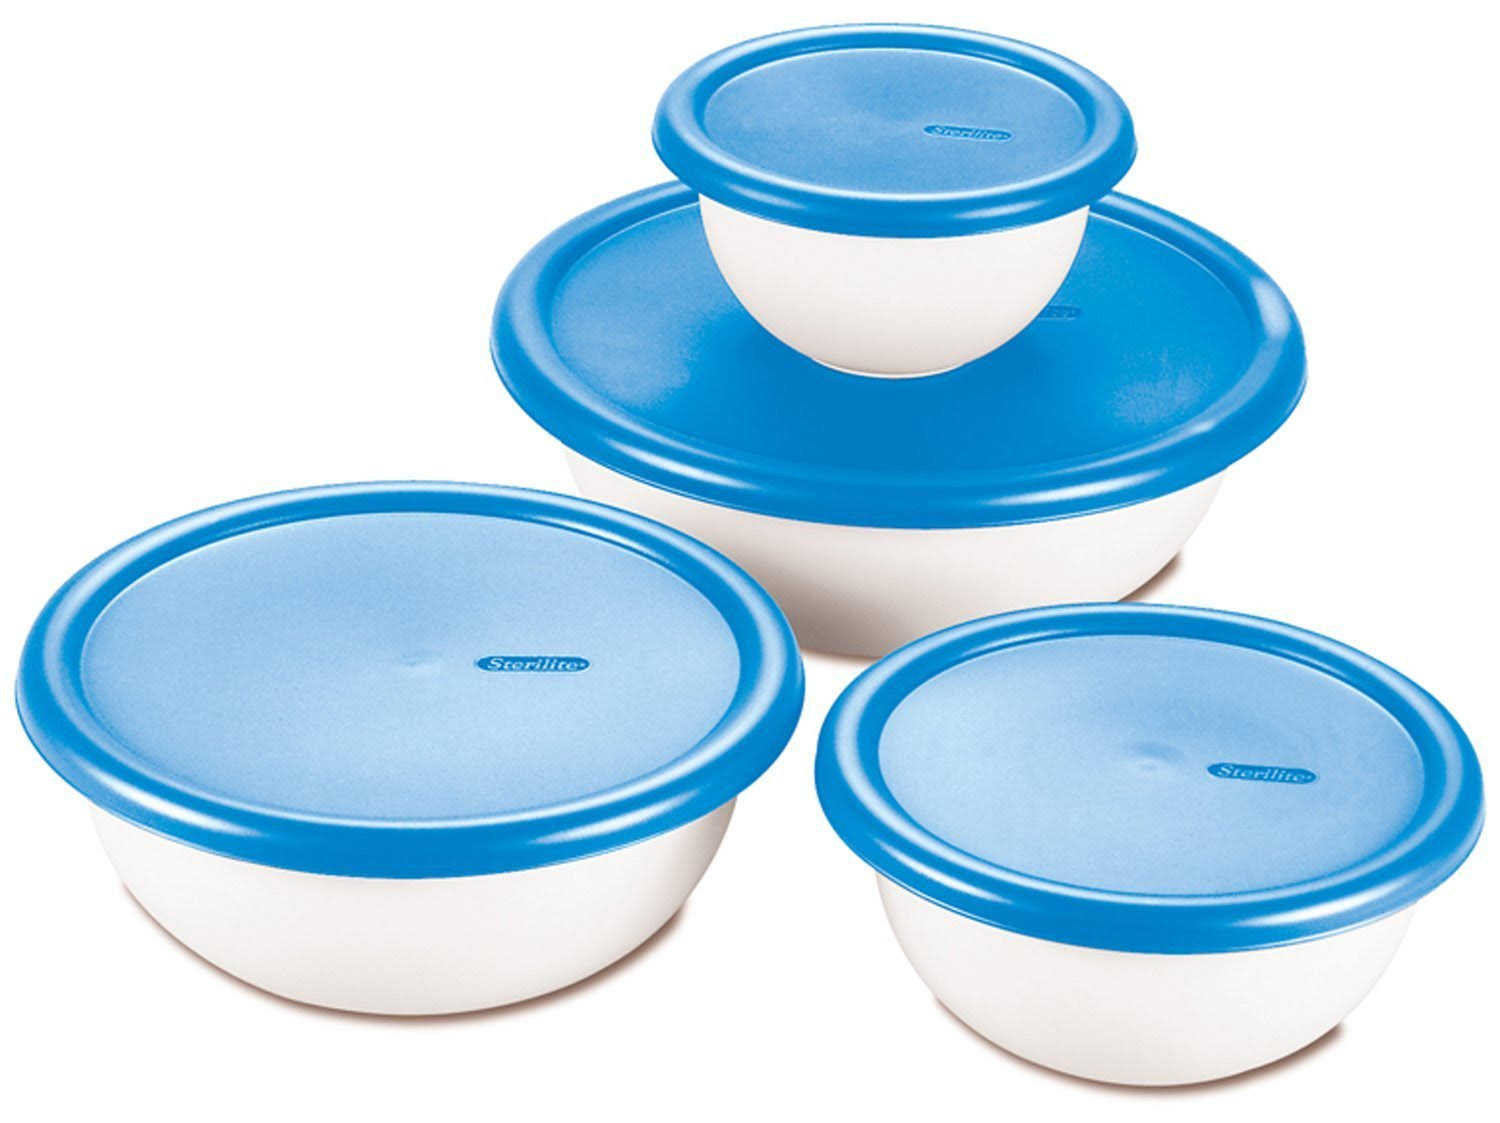 Sterilite Covered Bowl Set - White & Blue